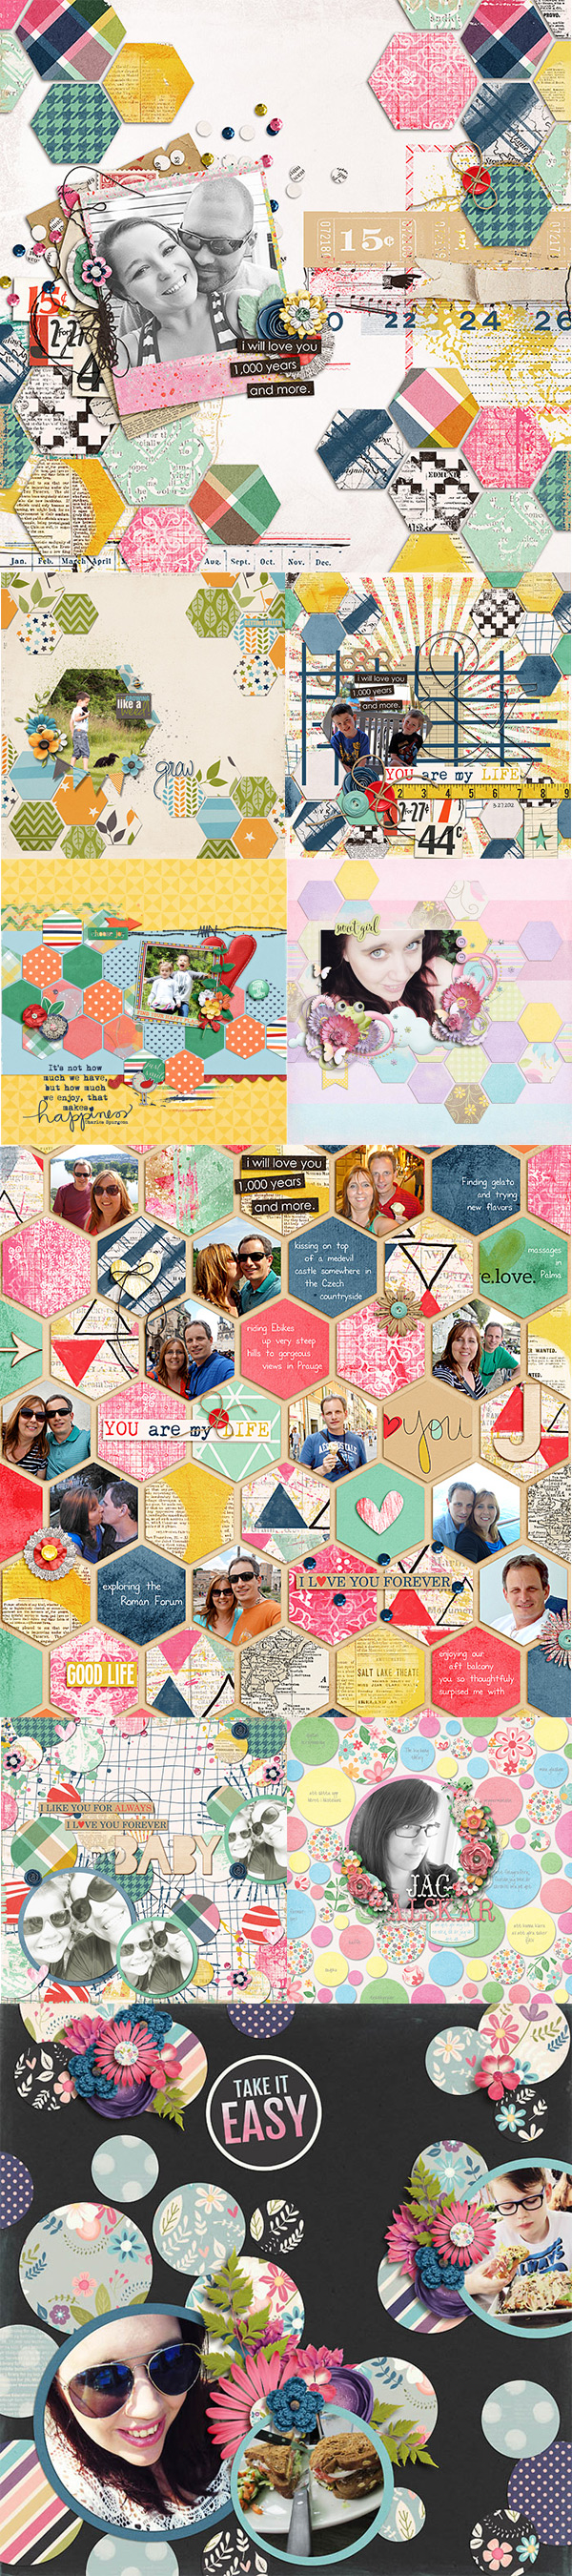 Layouts using Creative Blocks by Shawna Clingerman